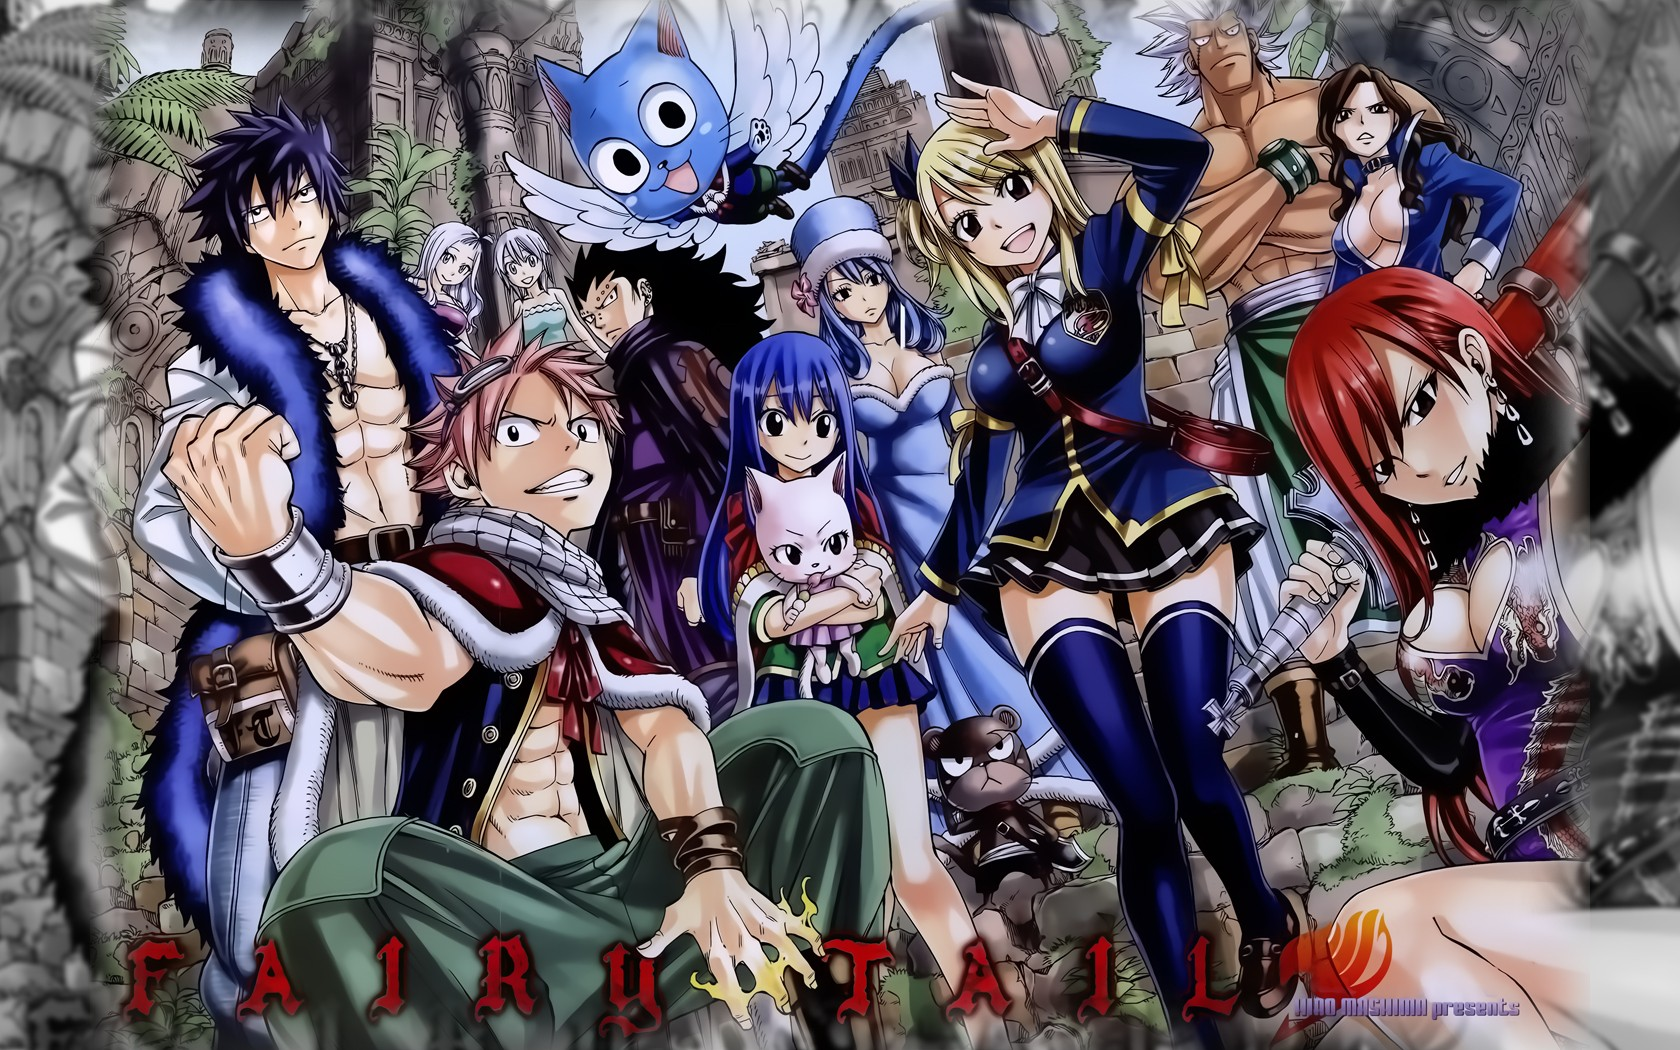 ... Fairy Tail Dragon Slayers Full Power Next Post Fairy Tail Disbanded